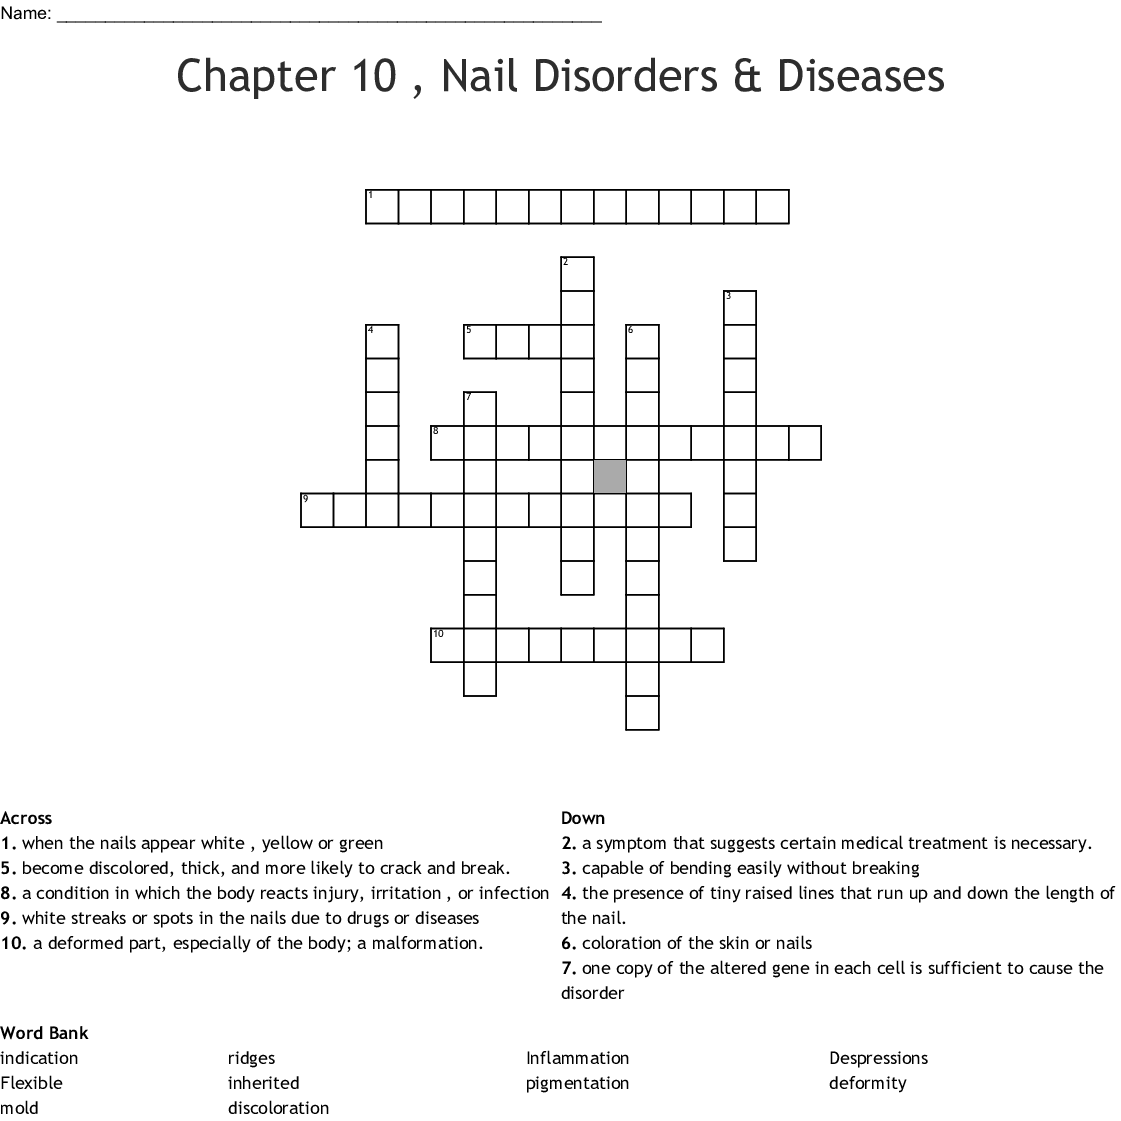 Chapter 10 Nail Disorders Amp Diseases Crossword